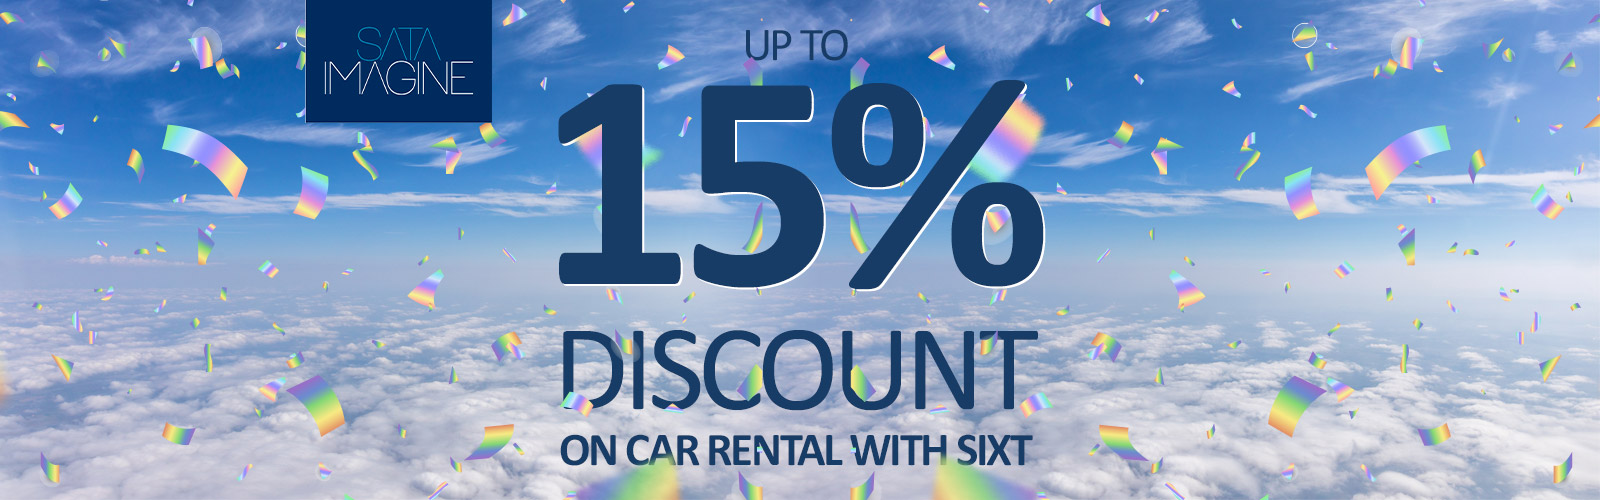 Up to 15% discount on car rental with SIXT